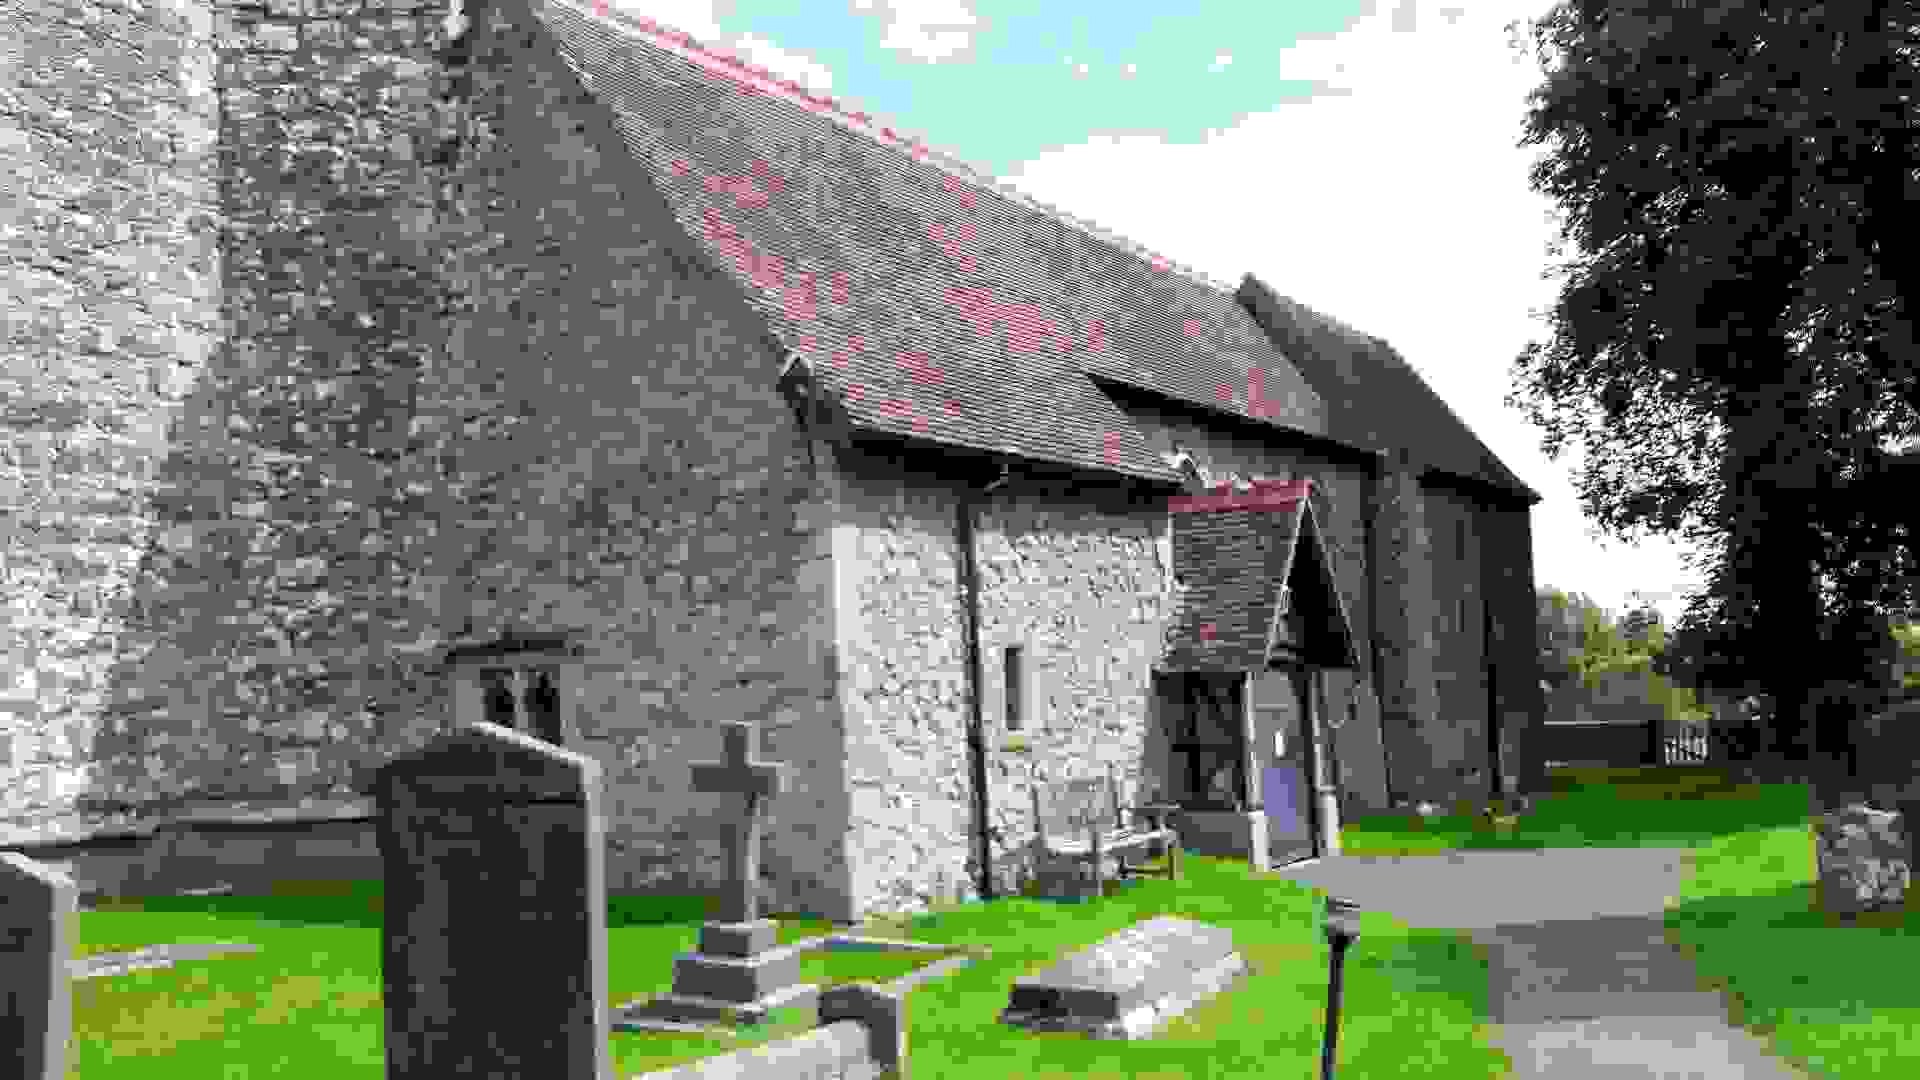 st_martins_church_aldingtonjpg